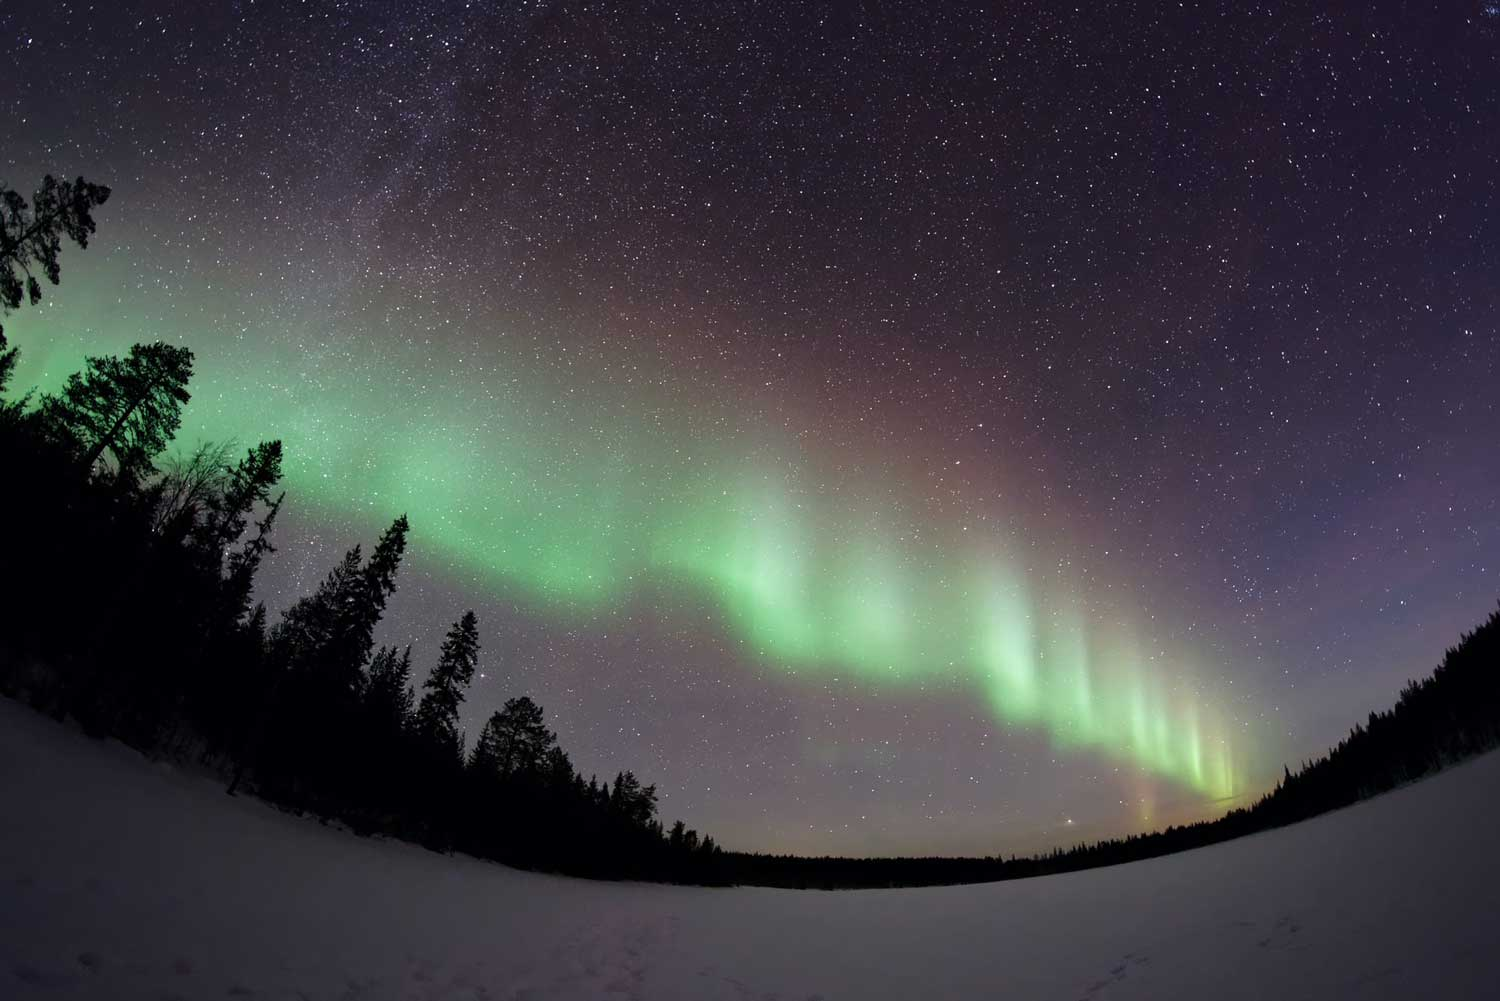 Northern lights viewing in the Yukon